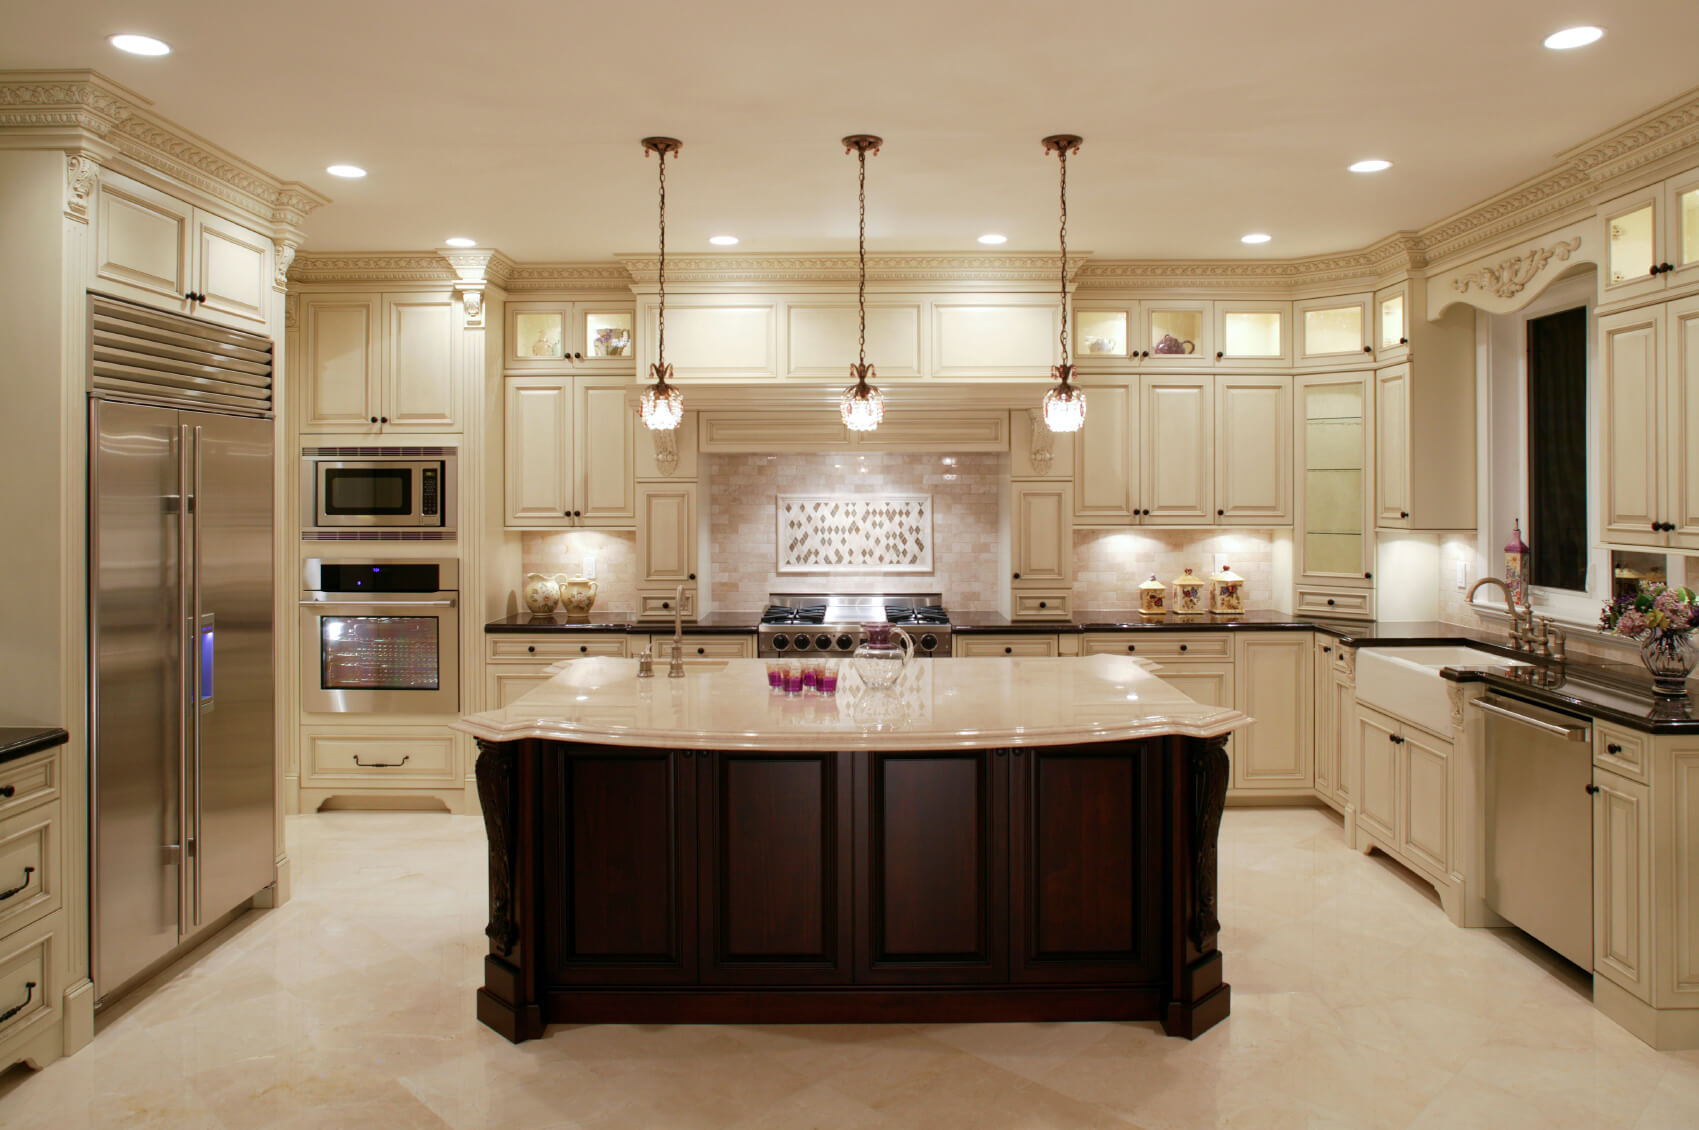 Awesome Design Of The Kitchen Areas With Brown Wooden Kitchen Island Added With Three Hanging Lamp And White Floor Ideas